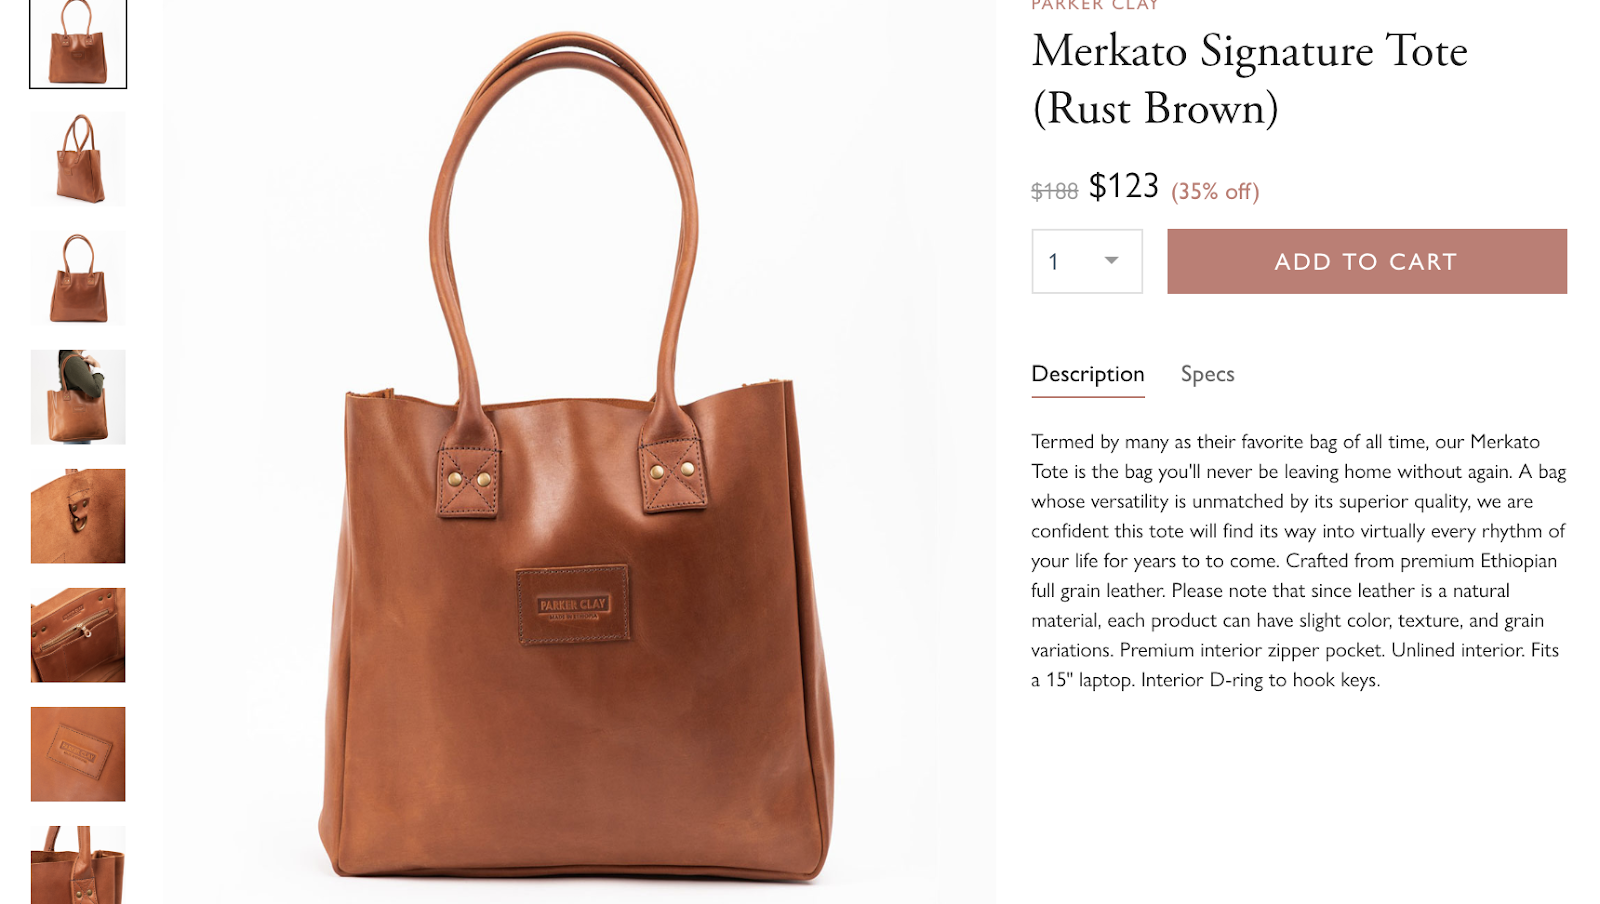 Find the merkato signature tote in the causebox market